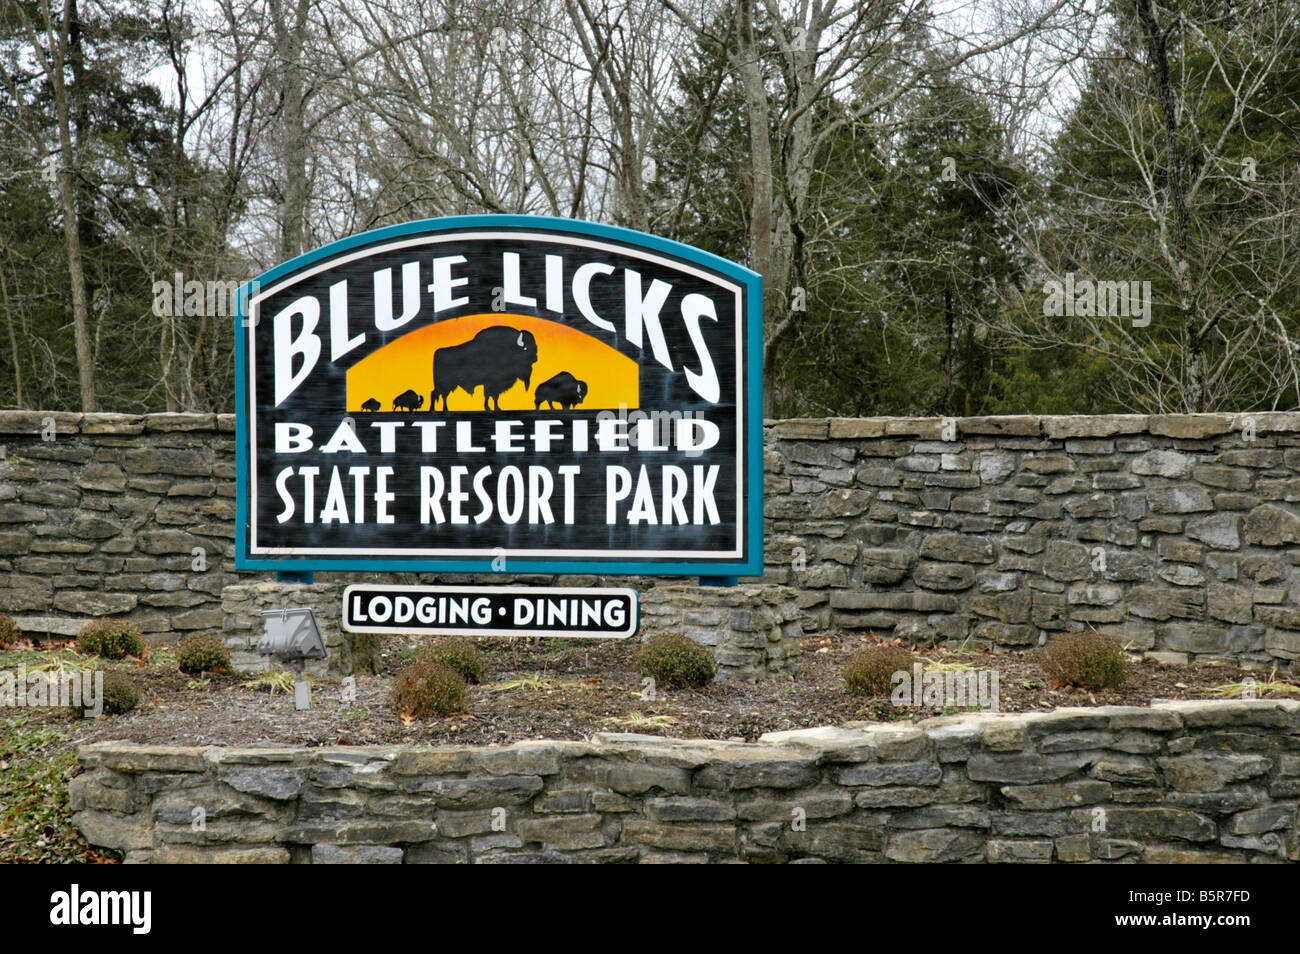 Entrance sign to Blue Licks Battlefield State Resort Park in Kentucky USA - Stock Image